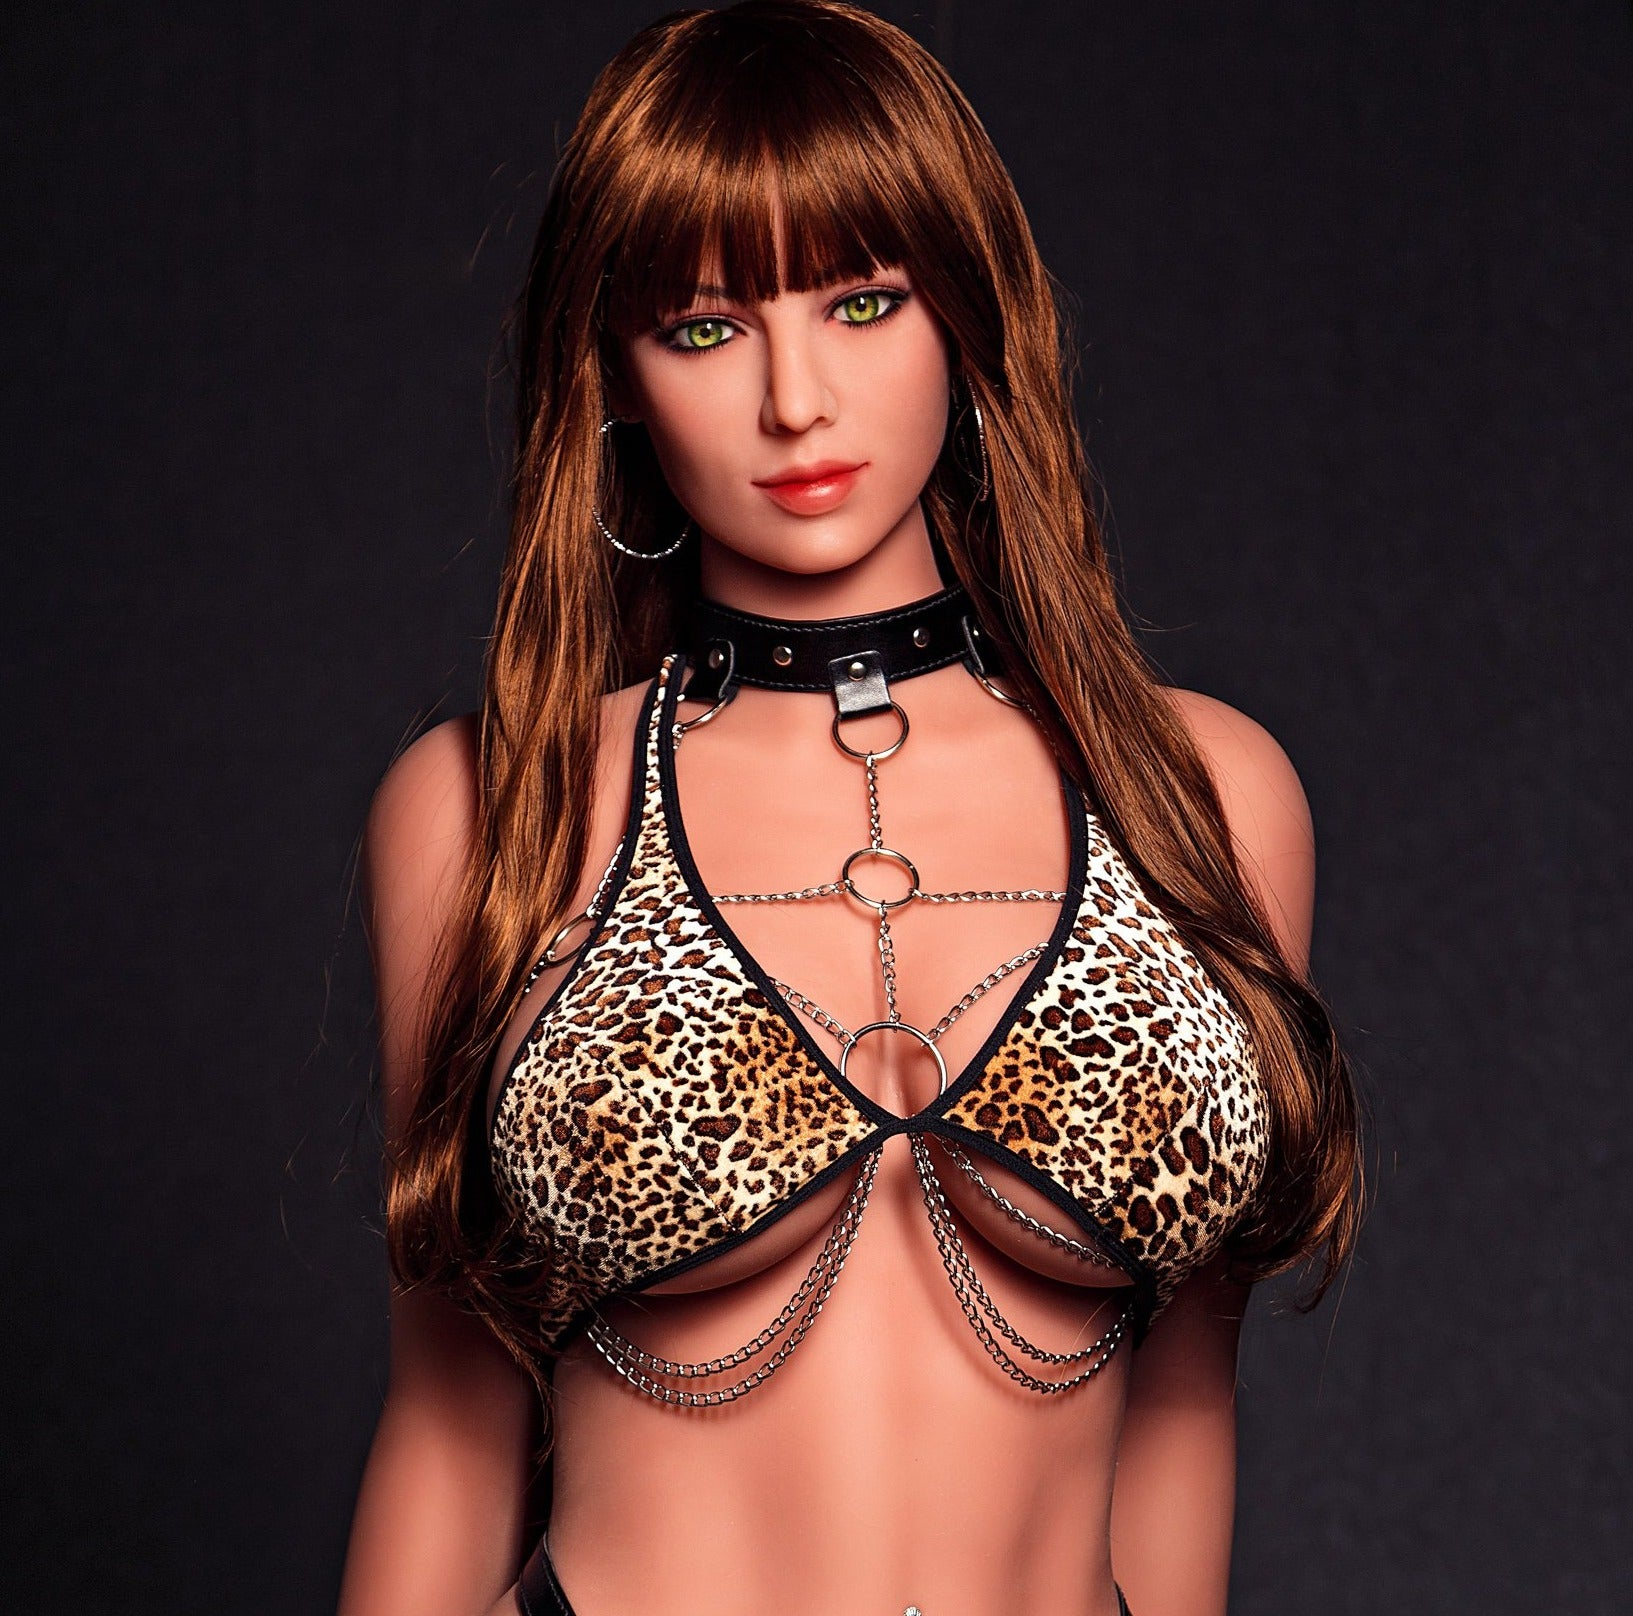 Real Life Sex Dolls - The Best Sex Dolls for Sex - Custom Sex Dolls by Premiumsexdolls.co